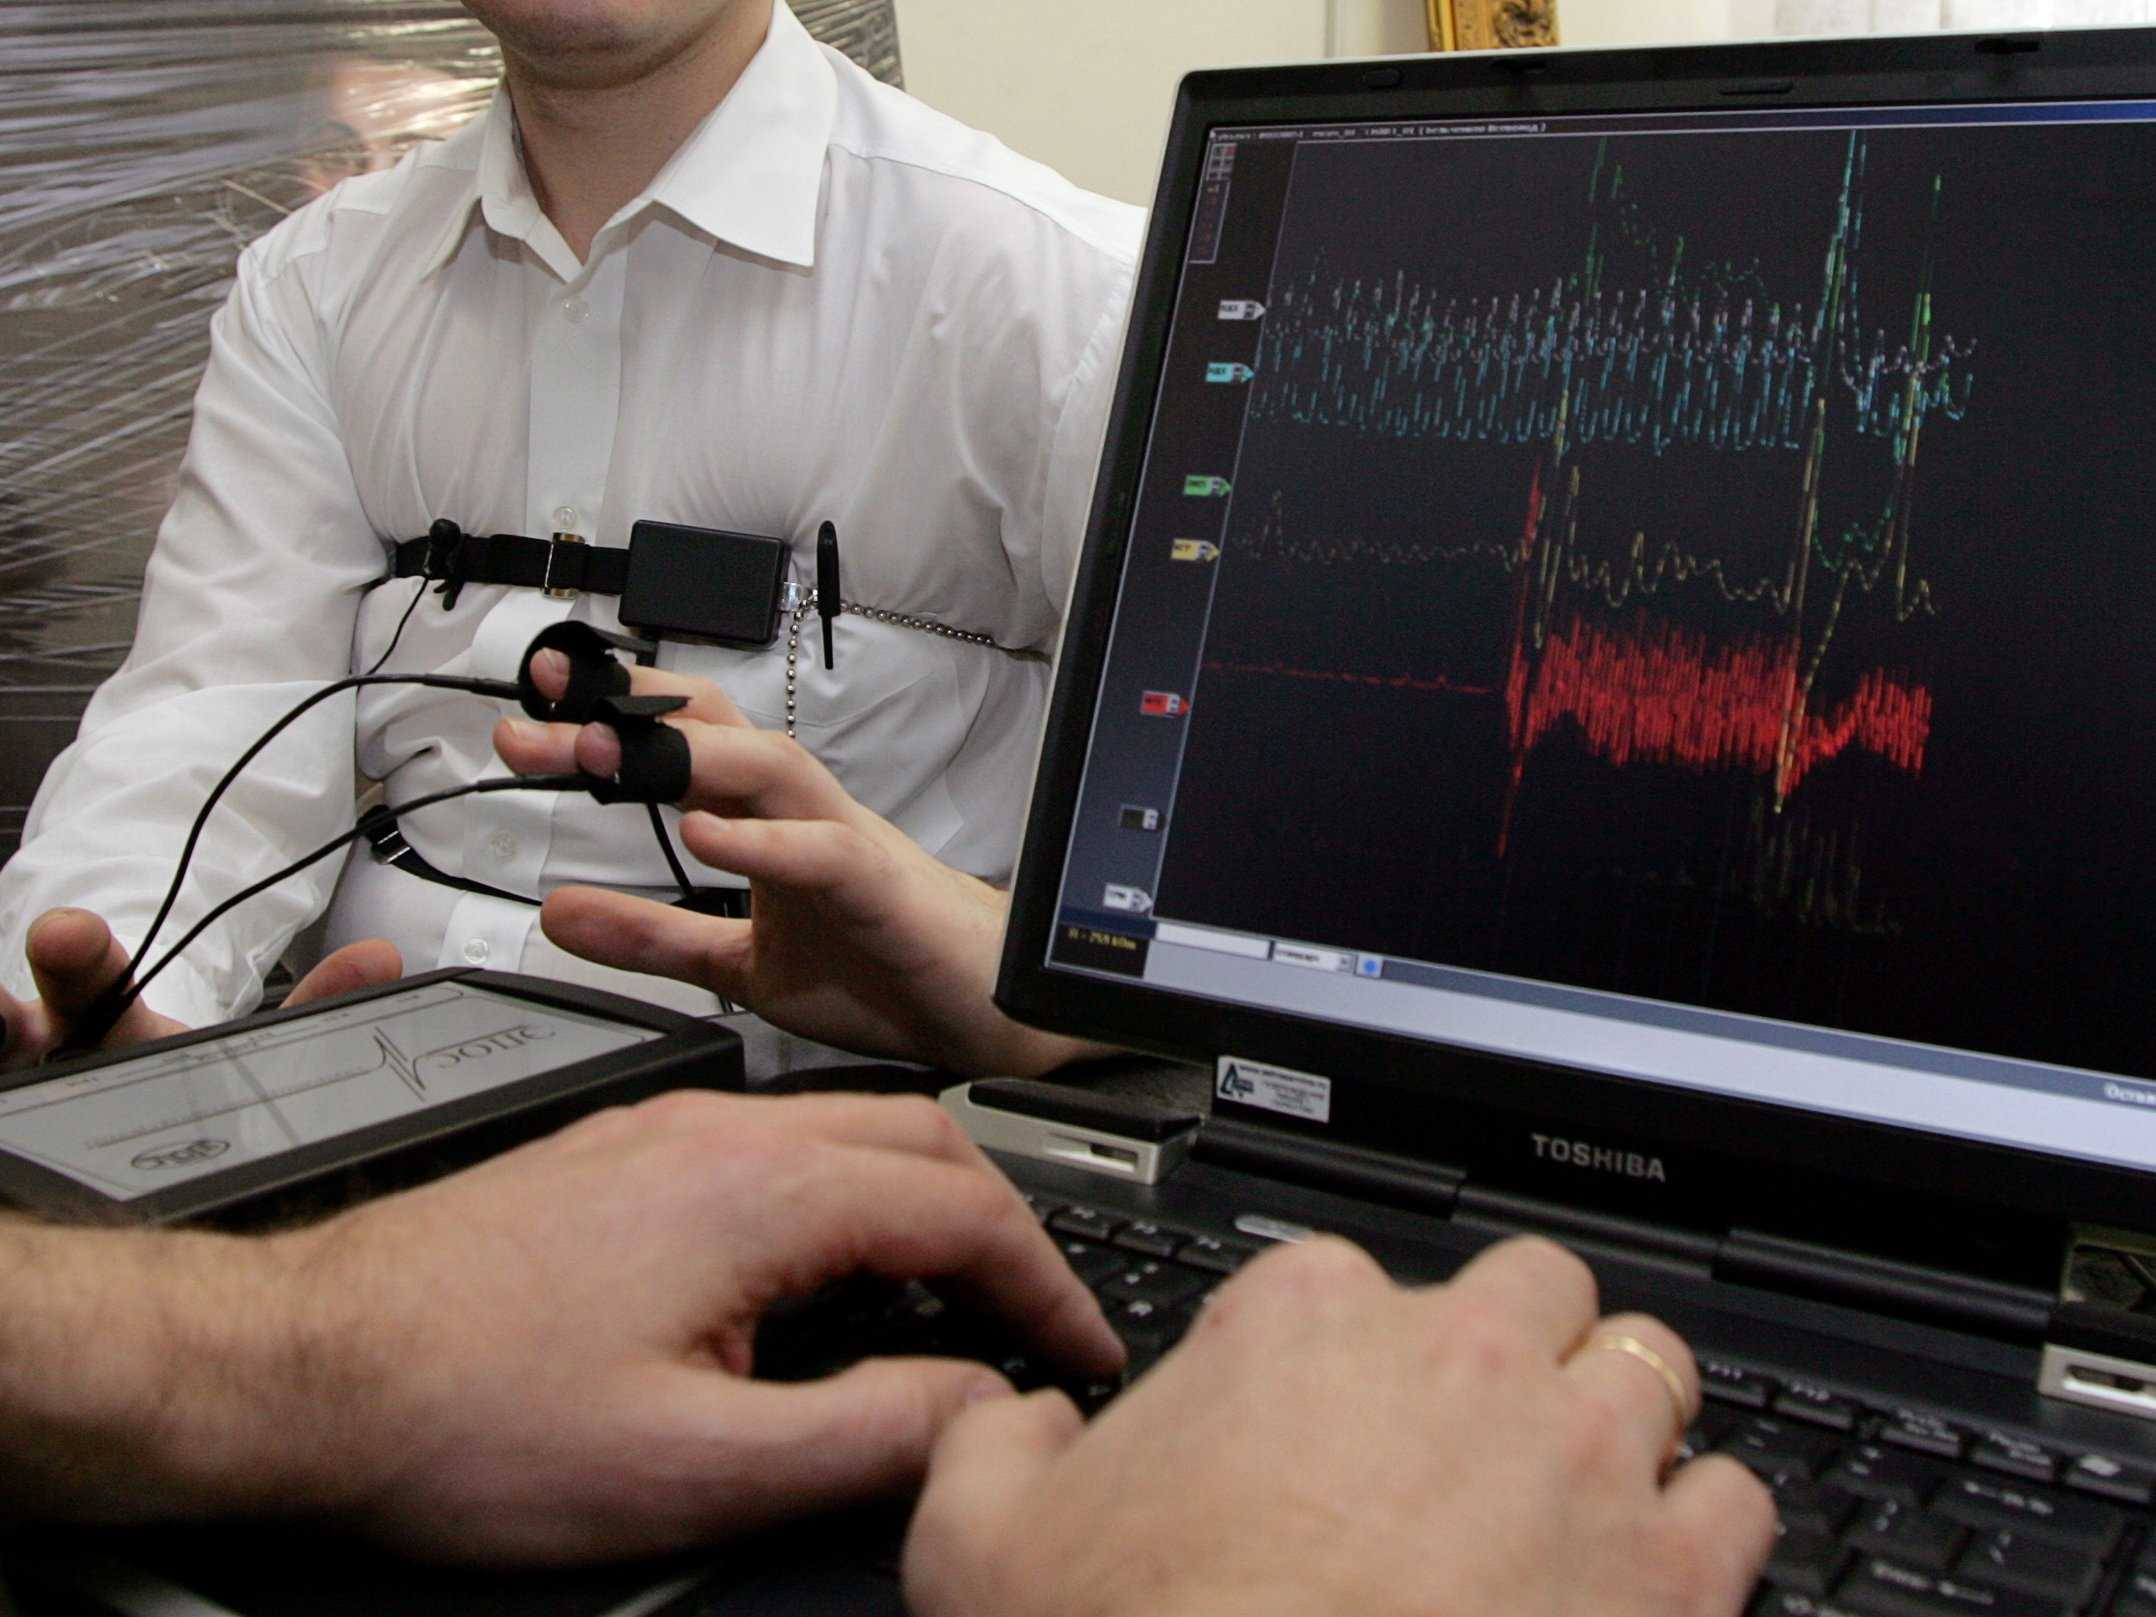 lie detector test for cheating spouse